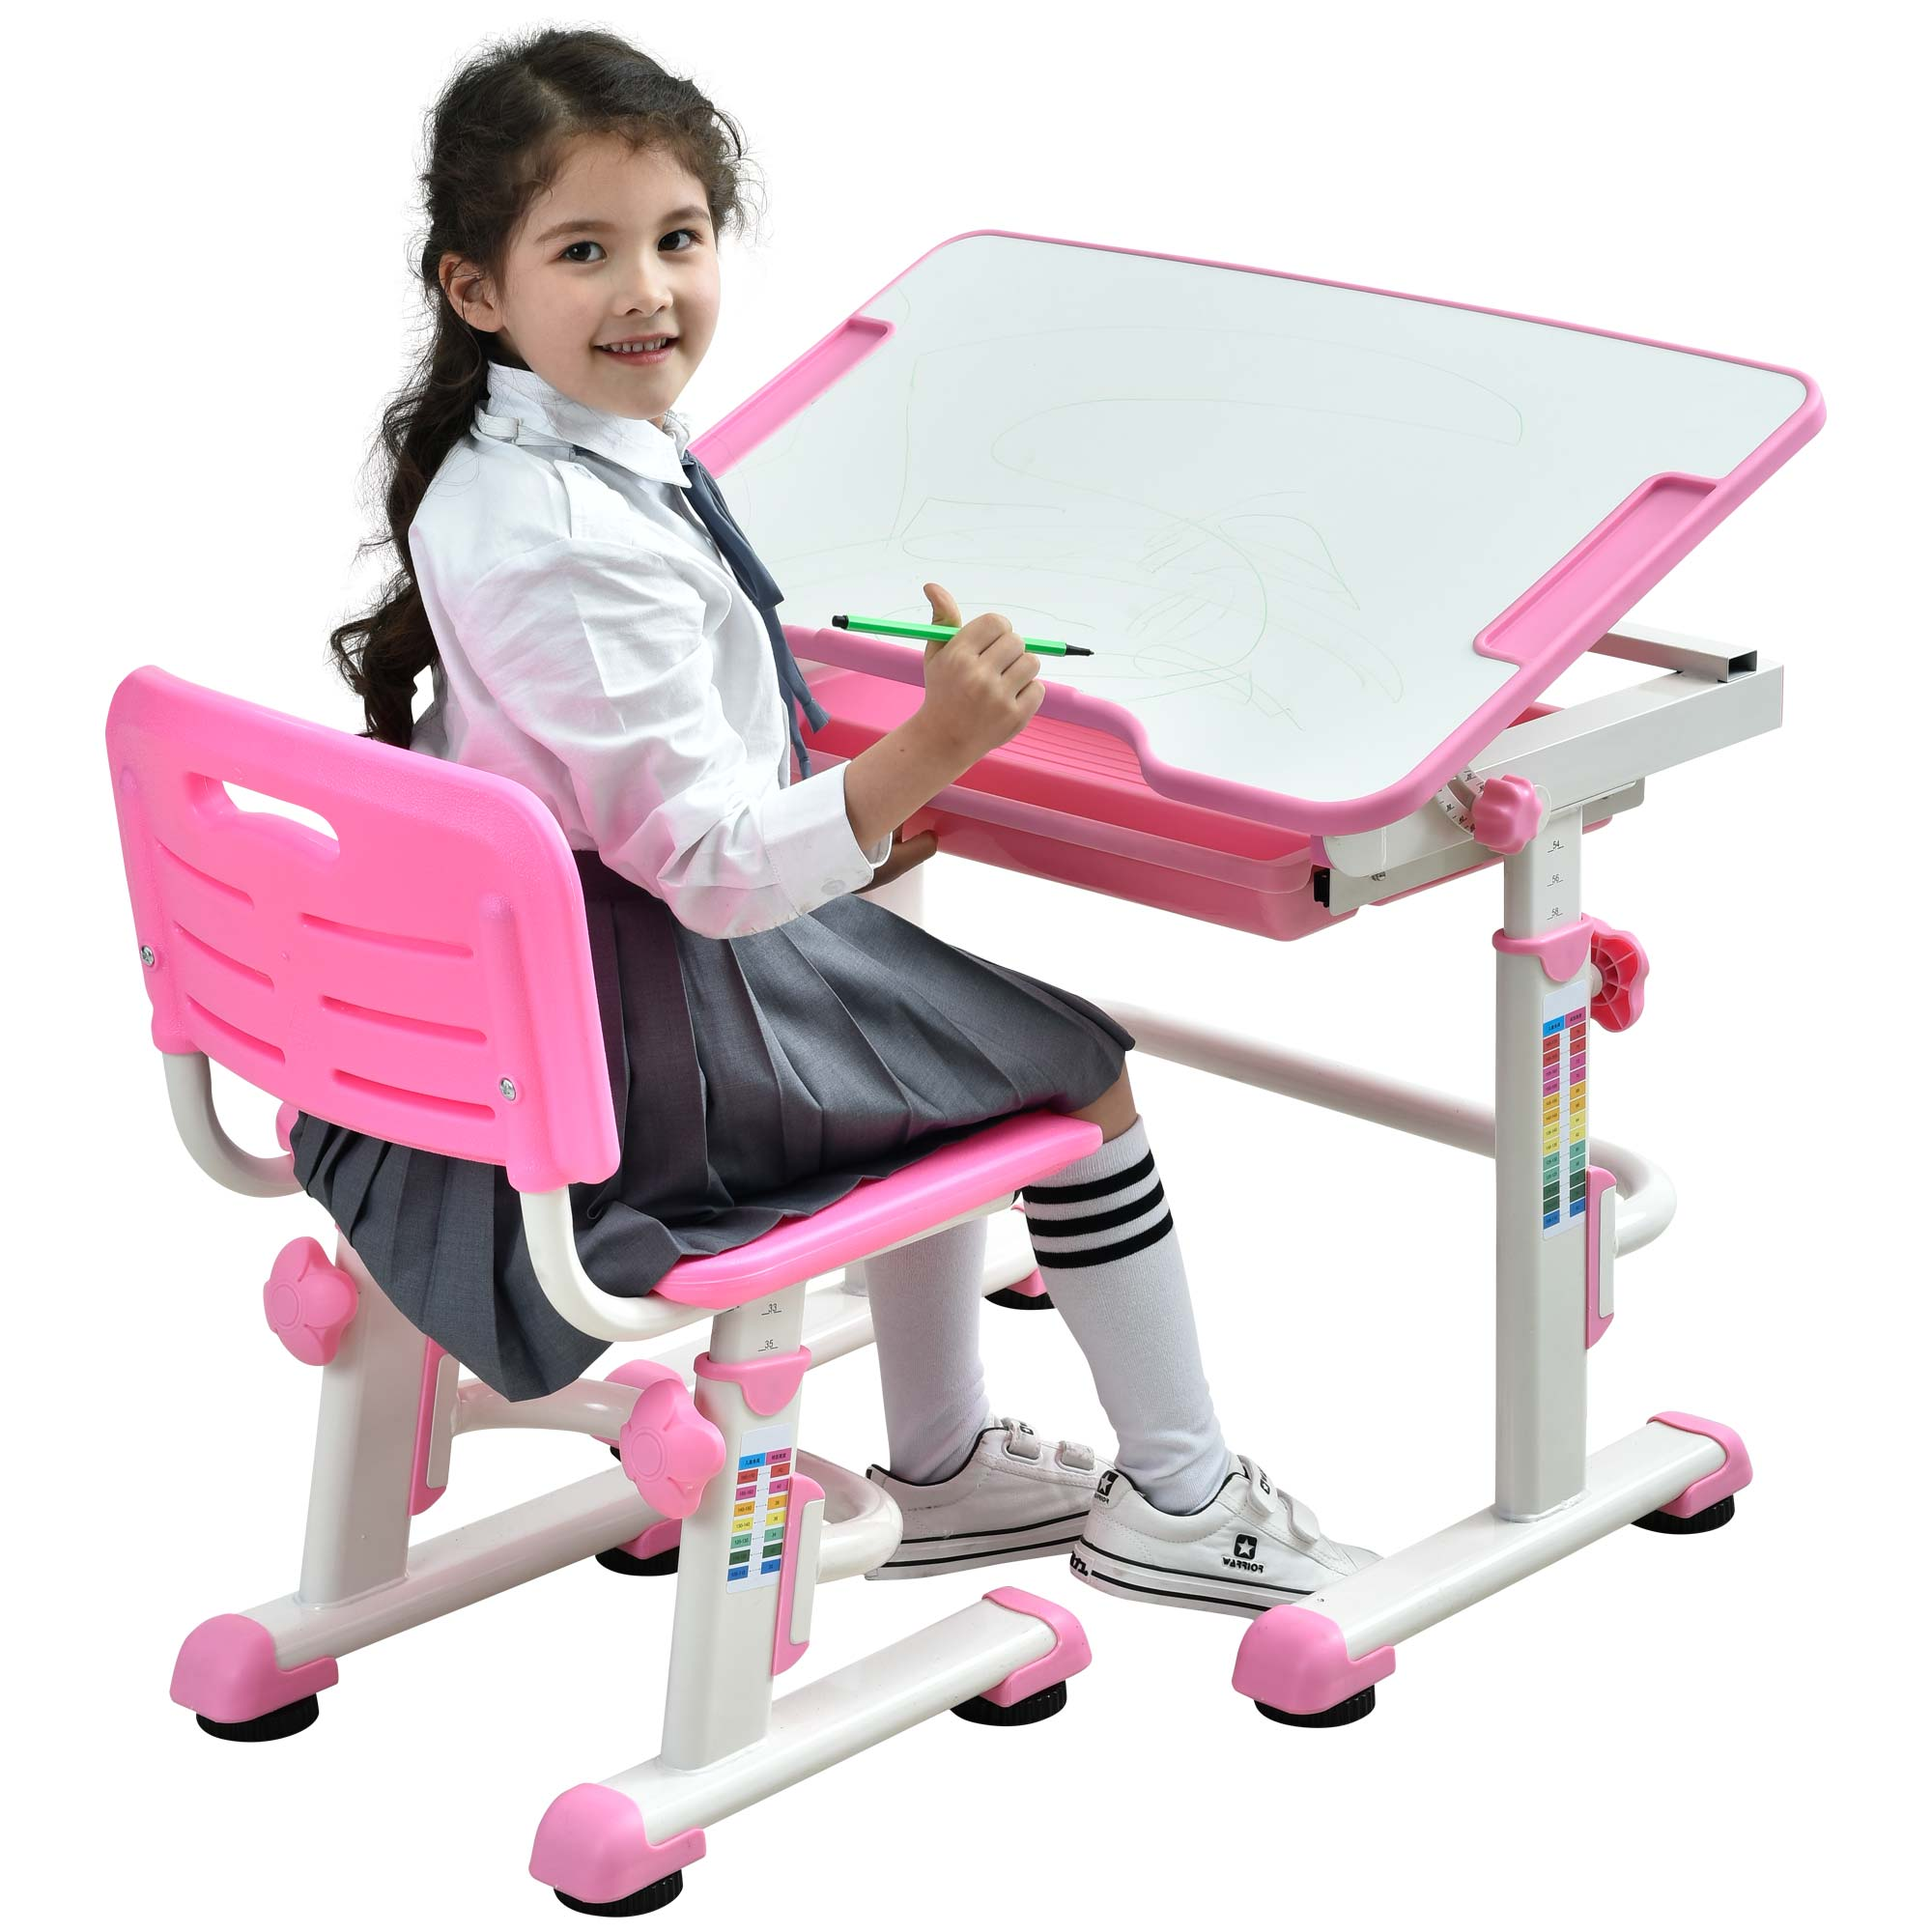 kids-table-and-chair-height-adjustable-children-desk-learning-table-tilting-desktop-pink-desk-for-girls-07